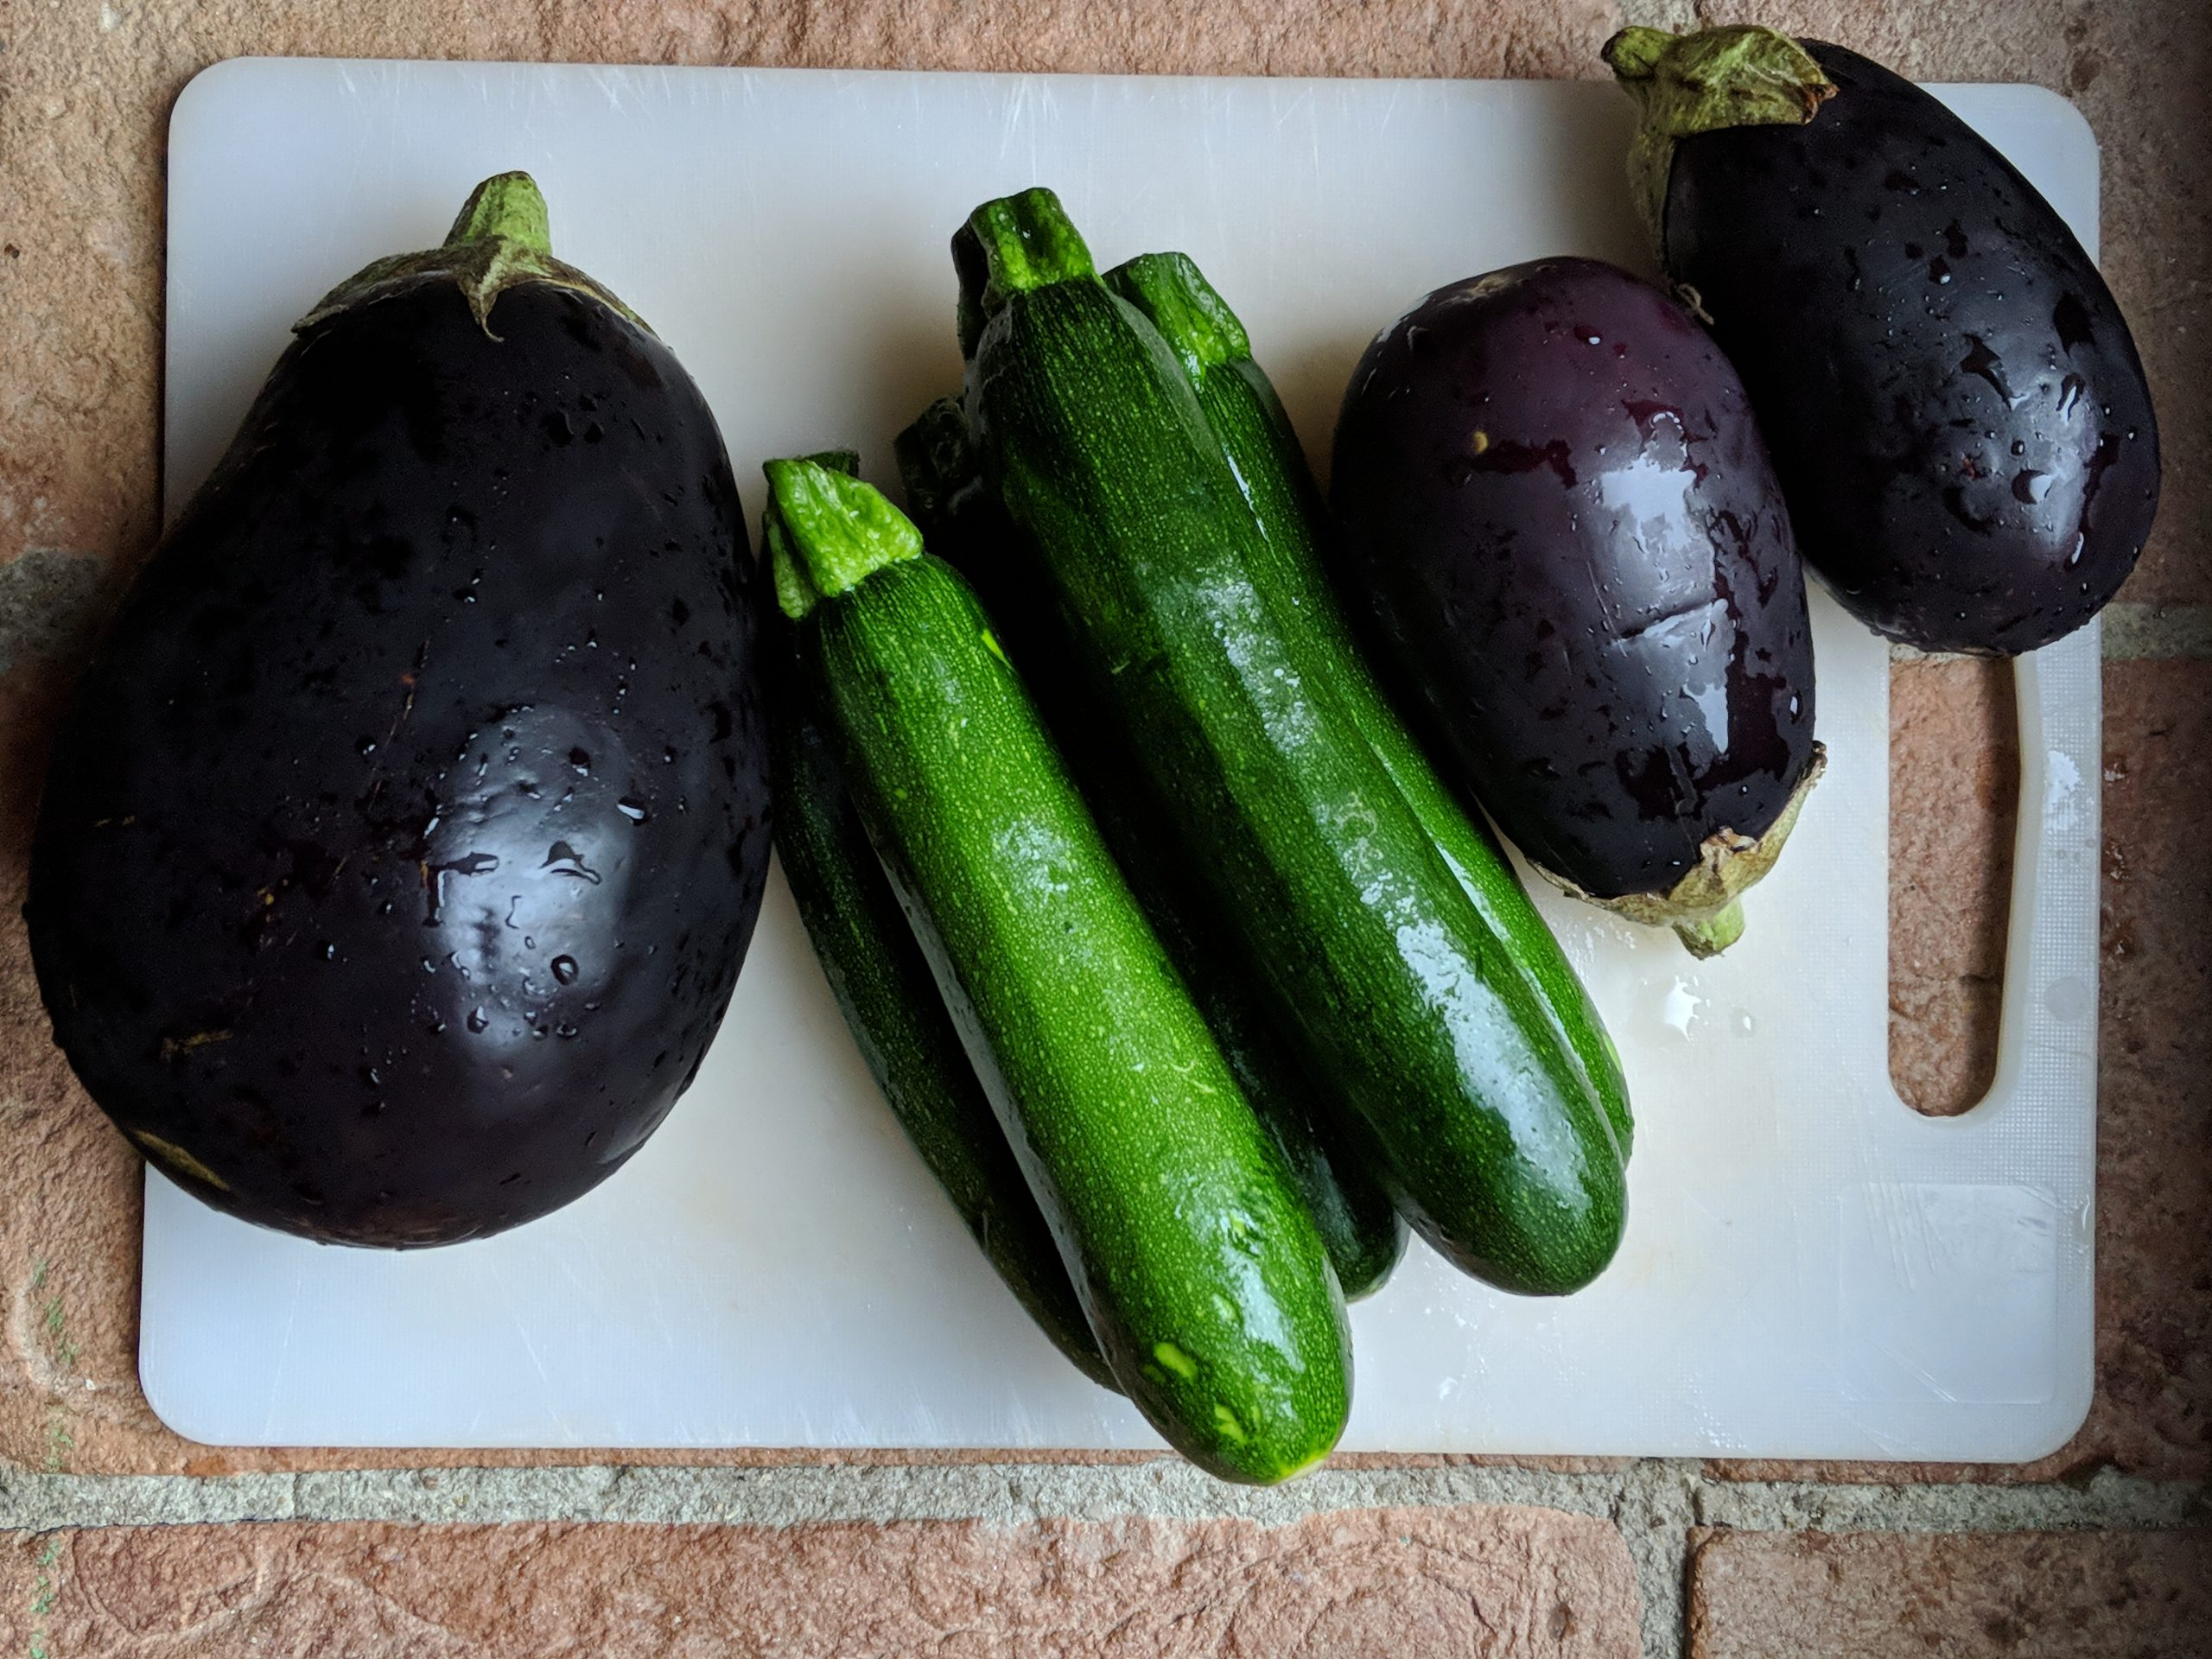 courgettes and aubergines